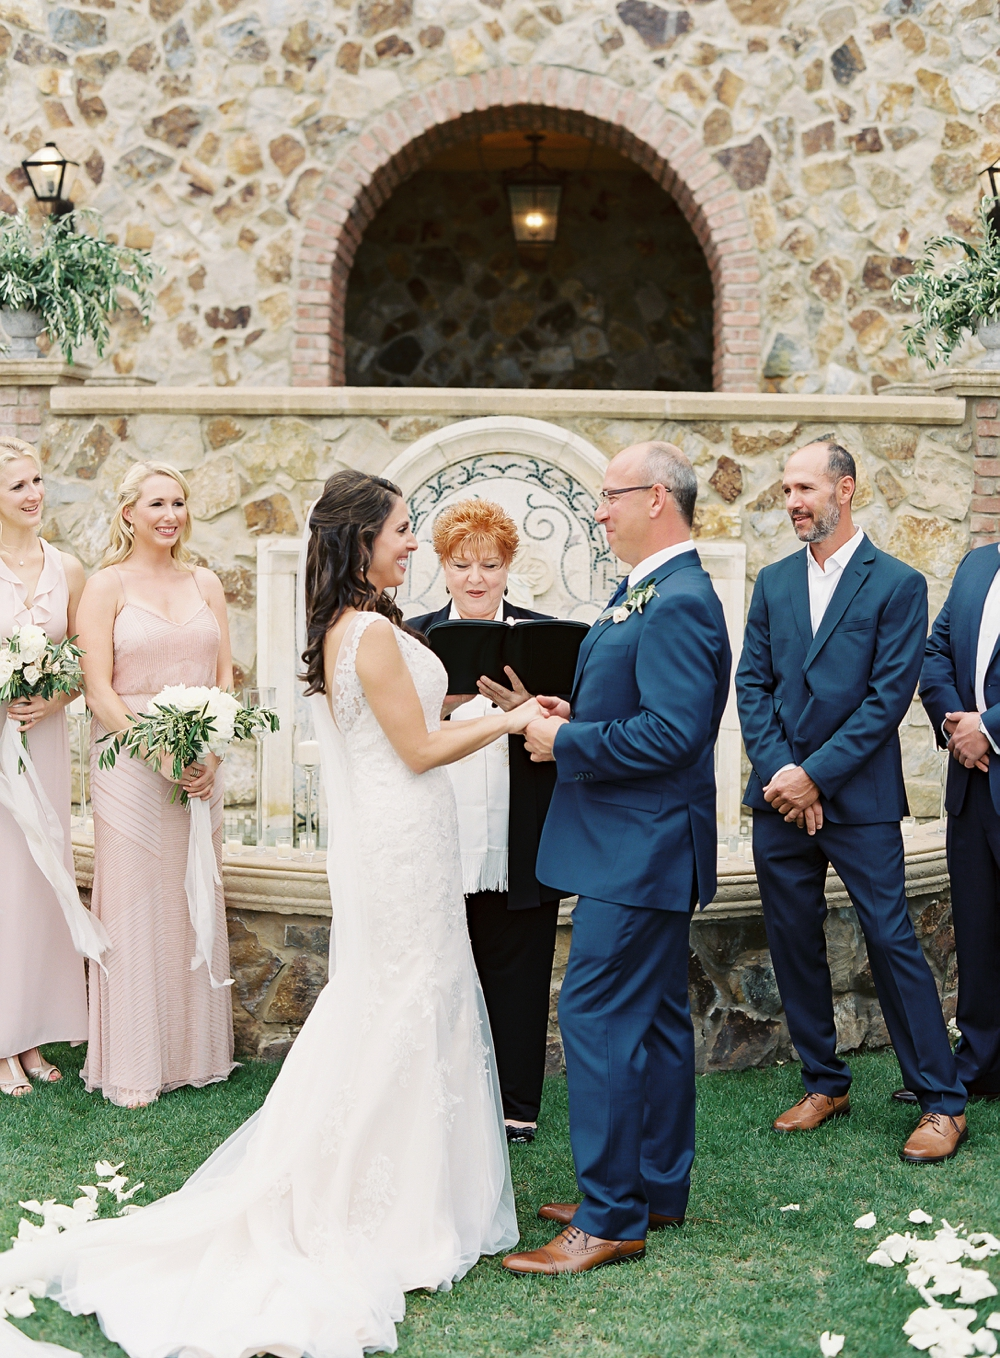 Vicki Grafton Photography - Fine Art Film Wedding Photographer - Bella Collina Wedding_0053.jpg